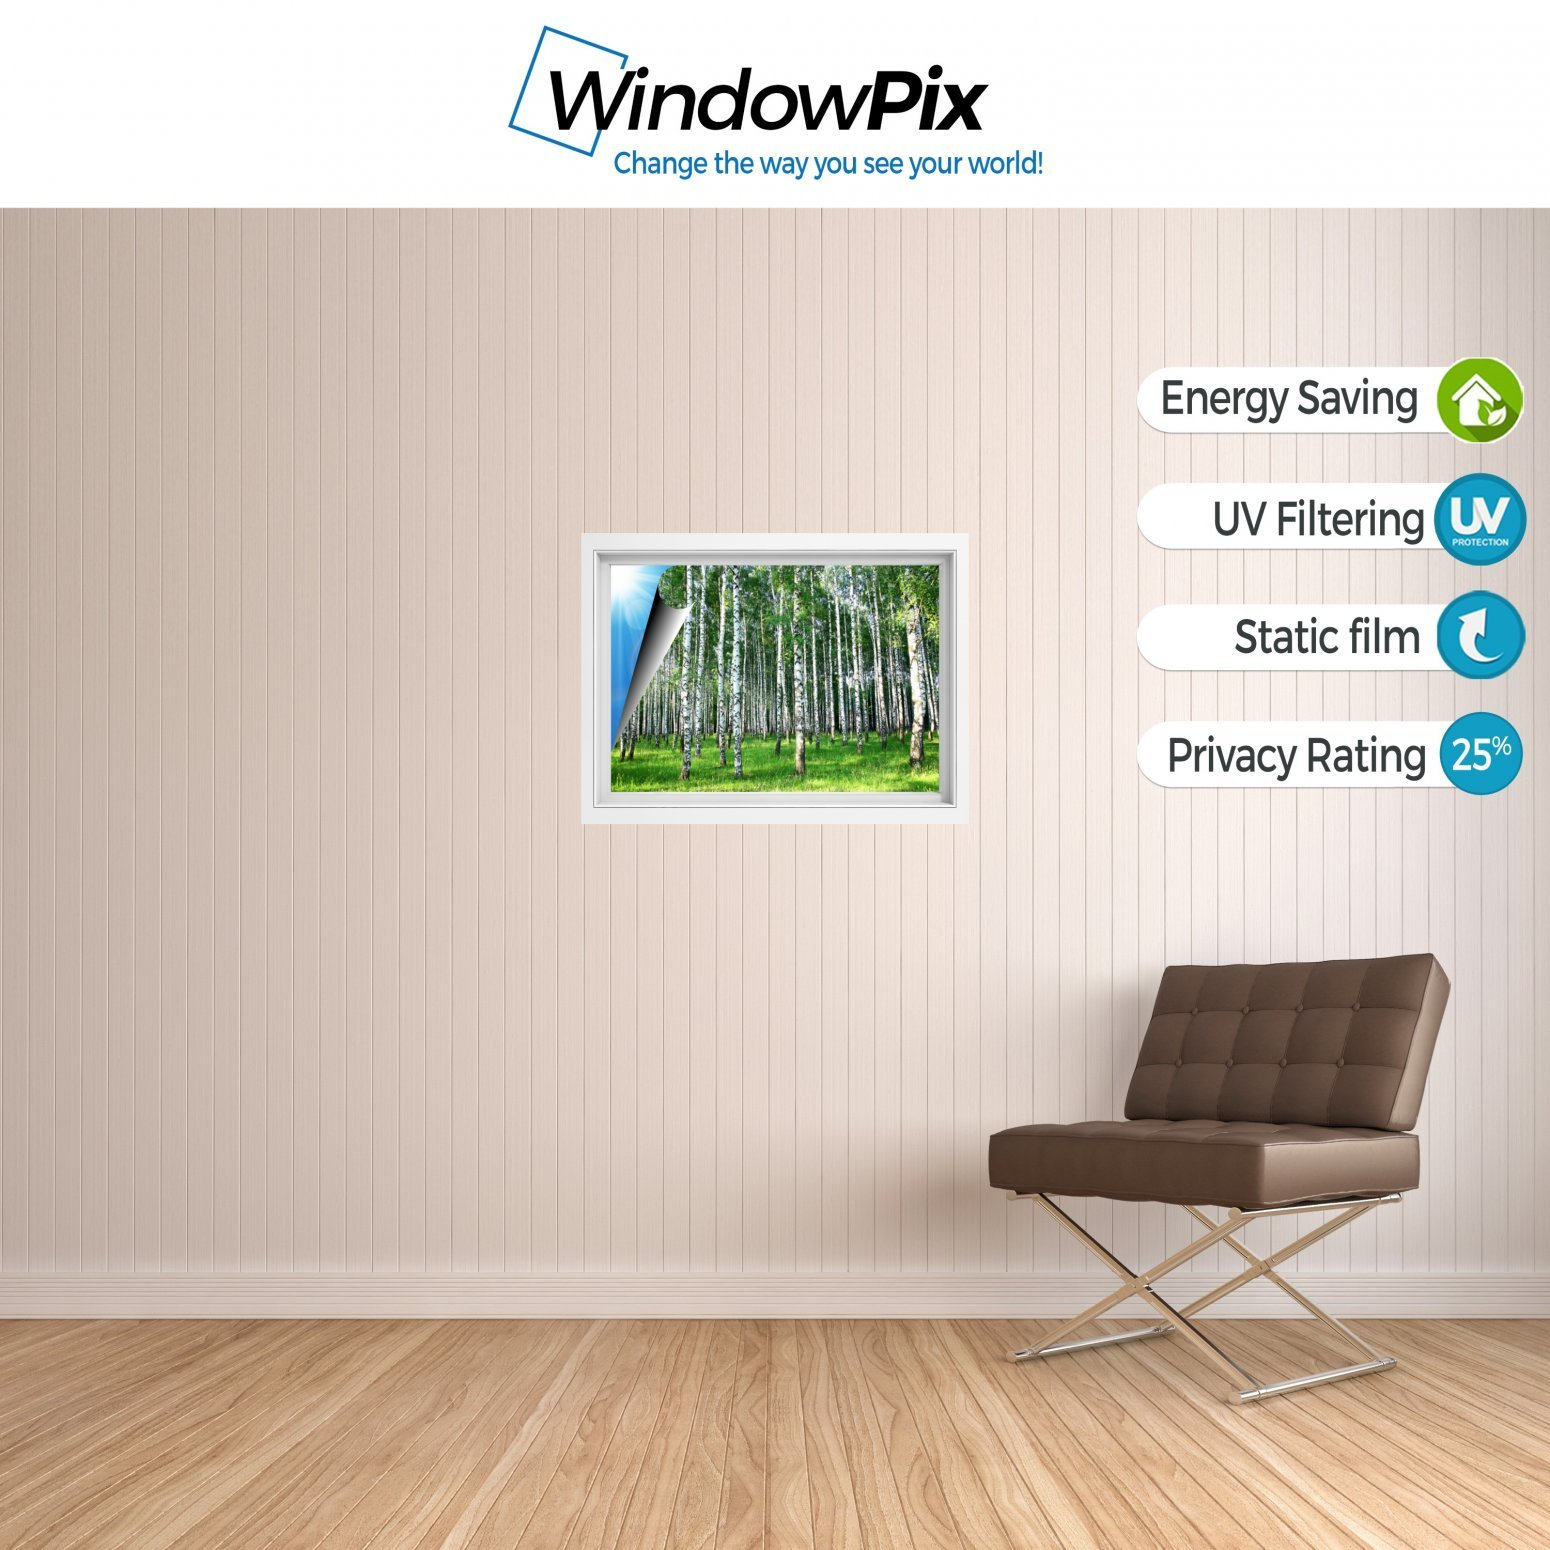 Windowpix 36x36 Inch Decorative Static Cling Window Film Sunlit Forest Trees Printed on Clear for Window Glass Panels. UV Protection, Energy Saving. by Windowpix (Image #3)